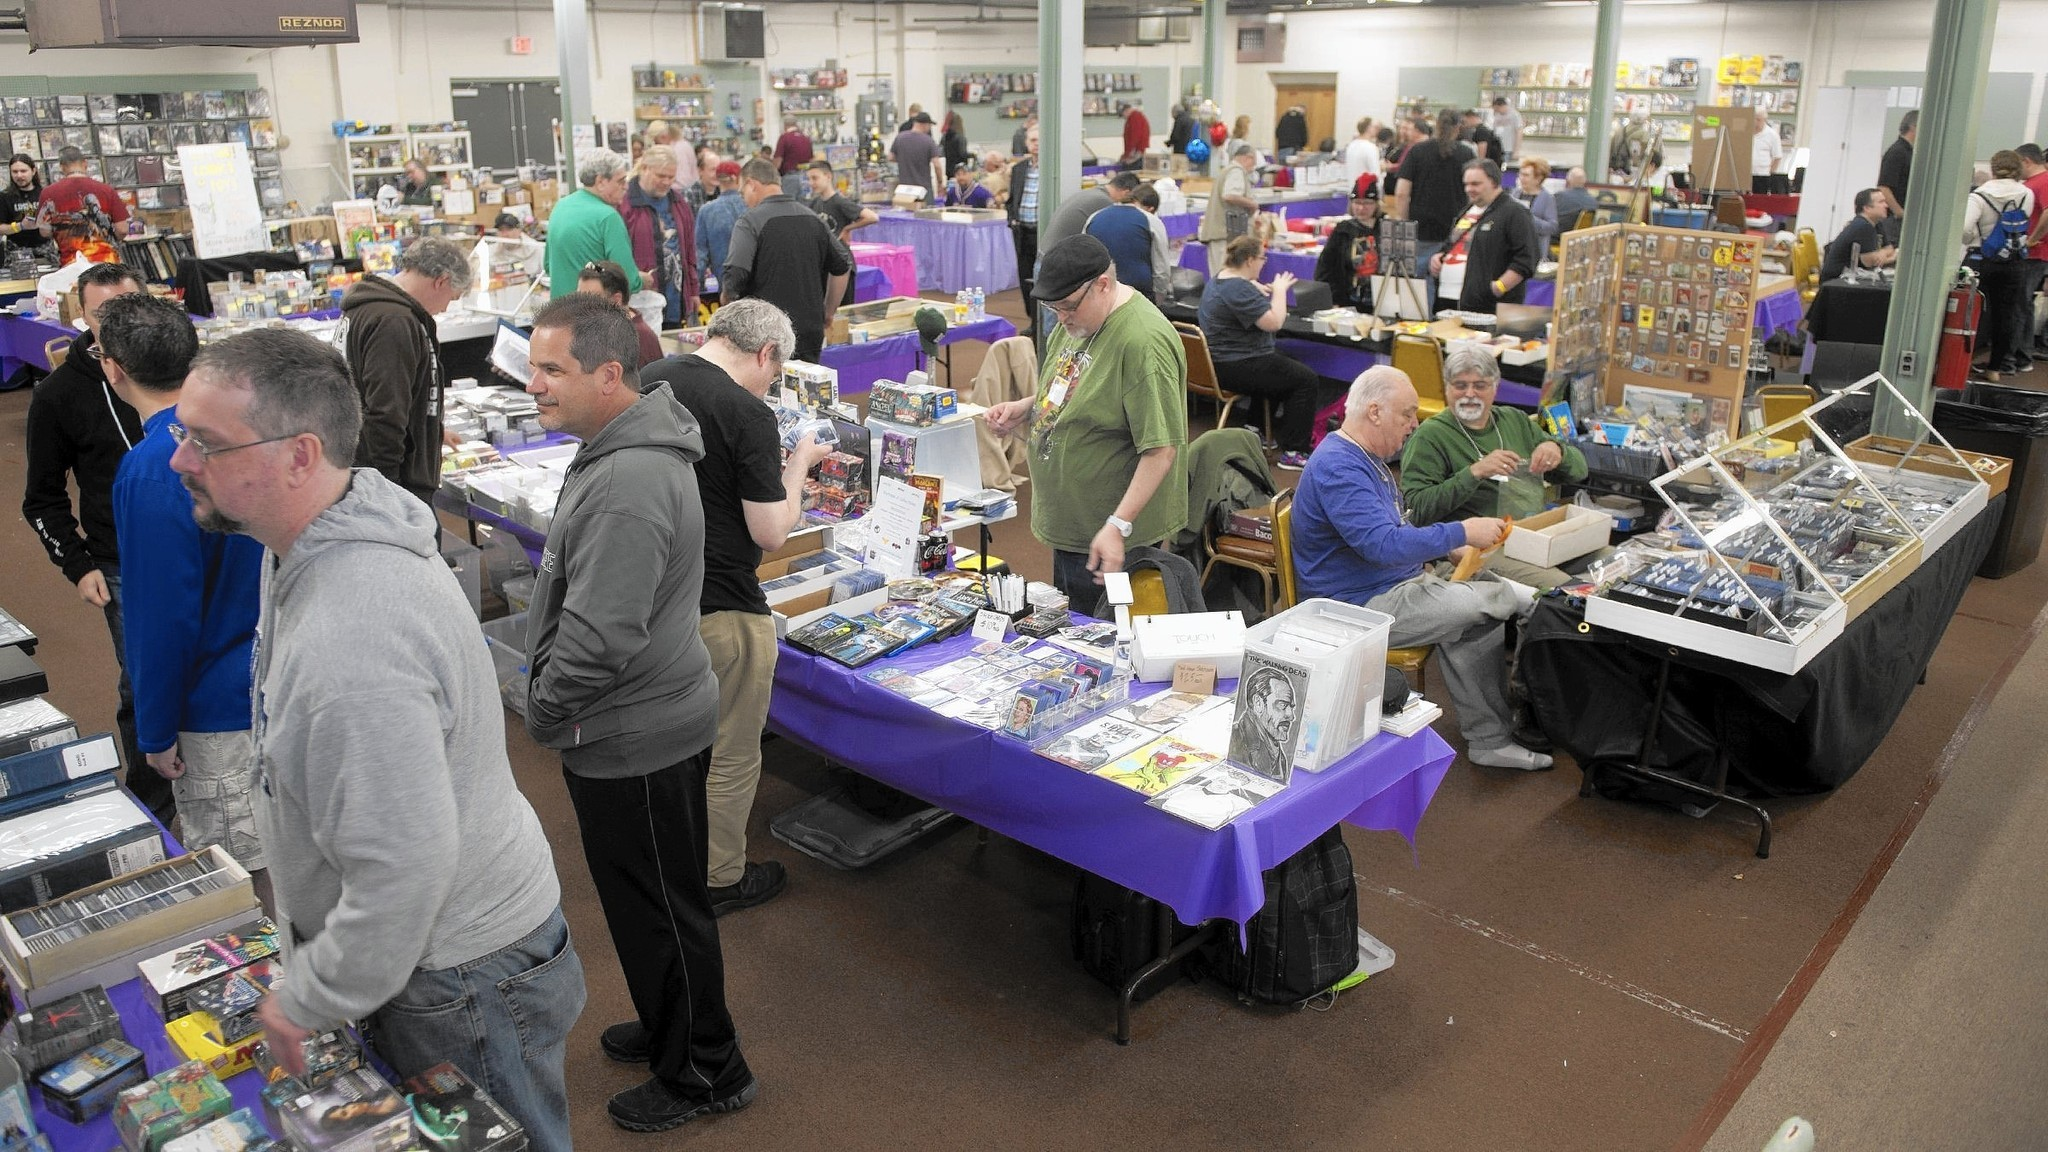 Annual Card Show In Allentown Draws Collectors And The